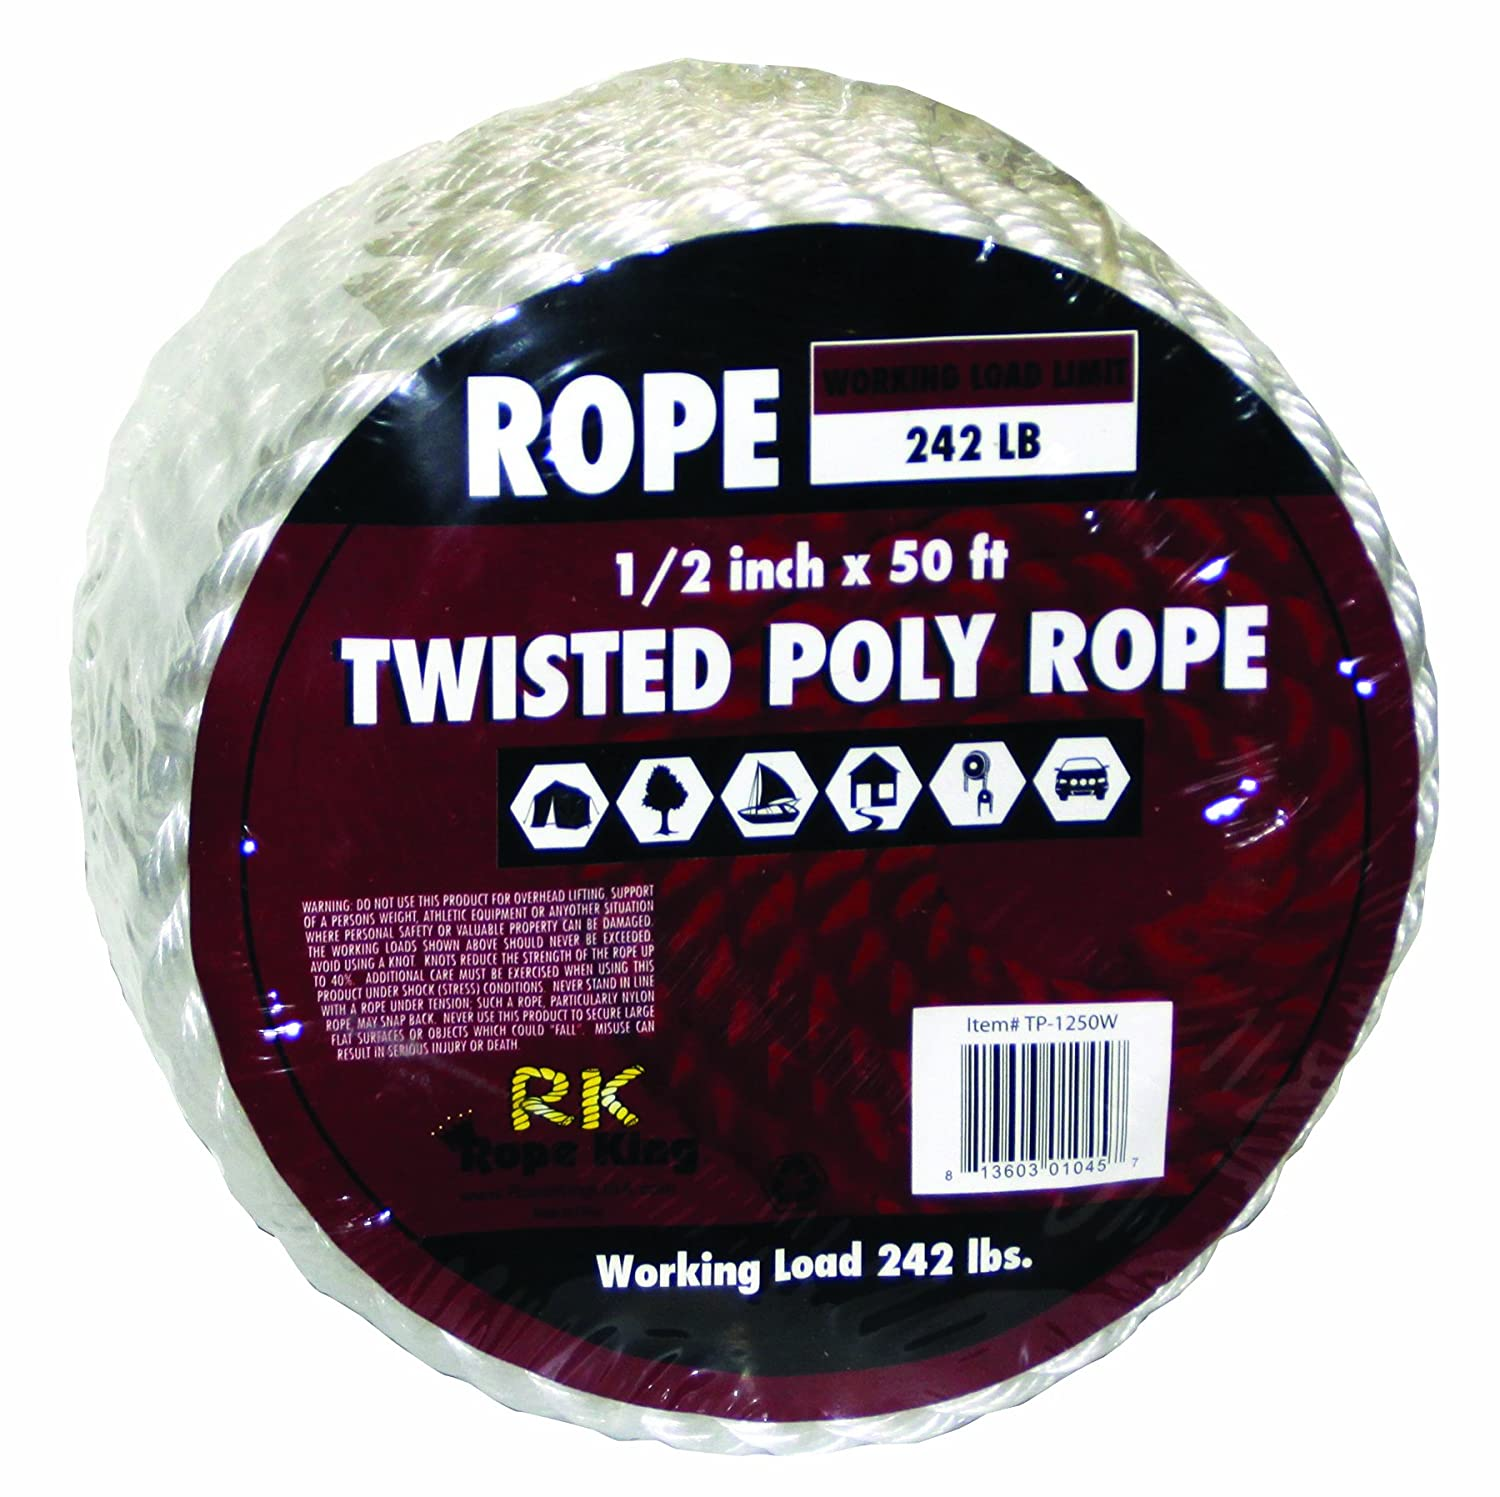 B005TLVY1E Rope King TP-1250W Twisted Poly Rope - White - 1/2 inch x 50 feet 81I4HzlWcKL